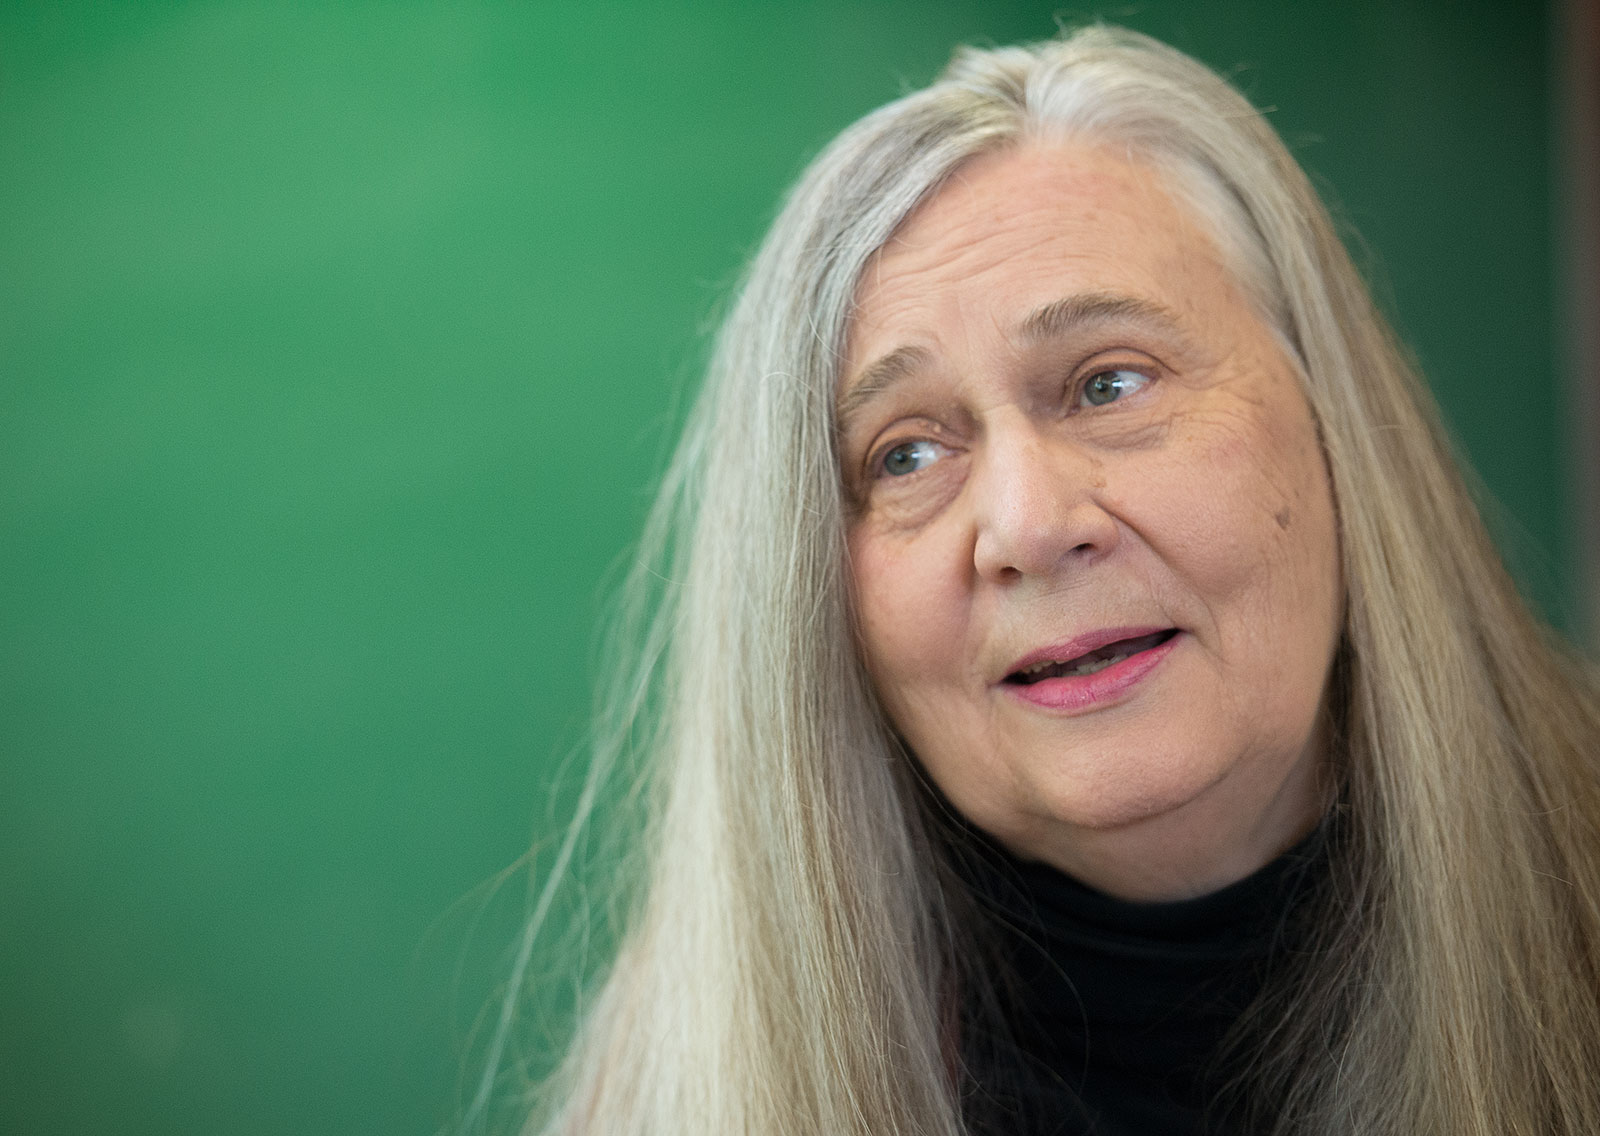 racial politics in gilead a novel by marilynne robinson Novel 'gilead' offers compelling take on life and death alan cheuse reviews gilead by marilynne robinson, a novel narrated by a christian minister as he nears death cheuse calls it a beautifully .